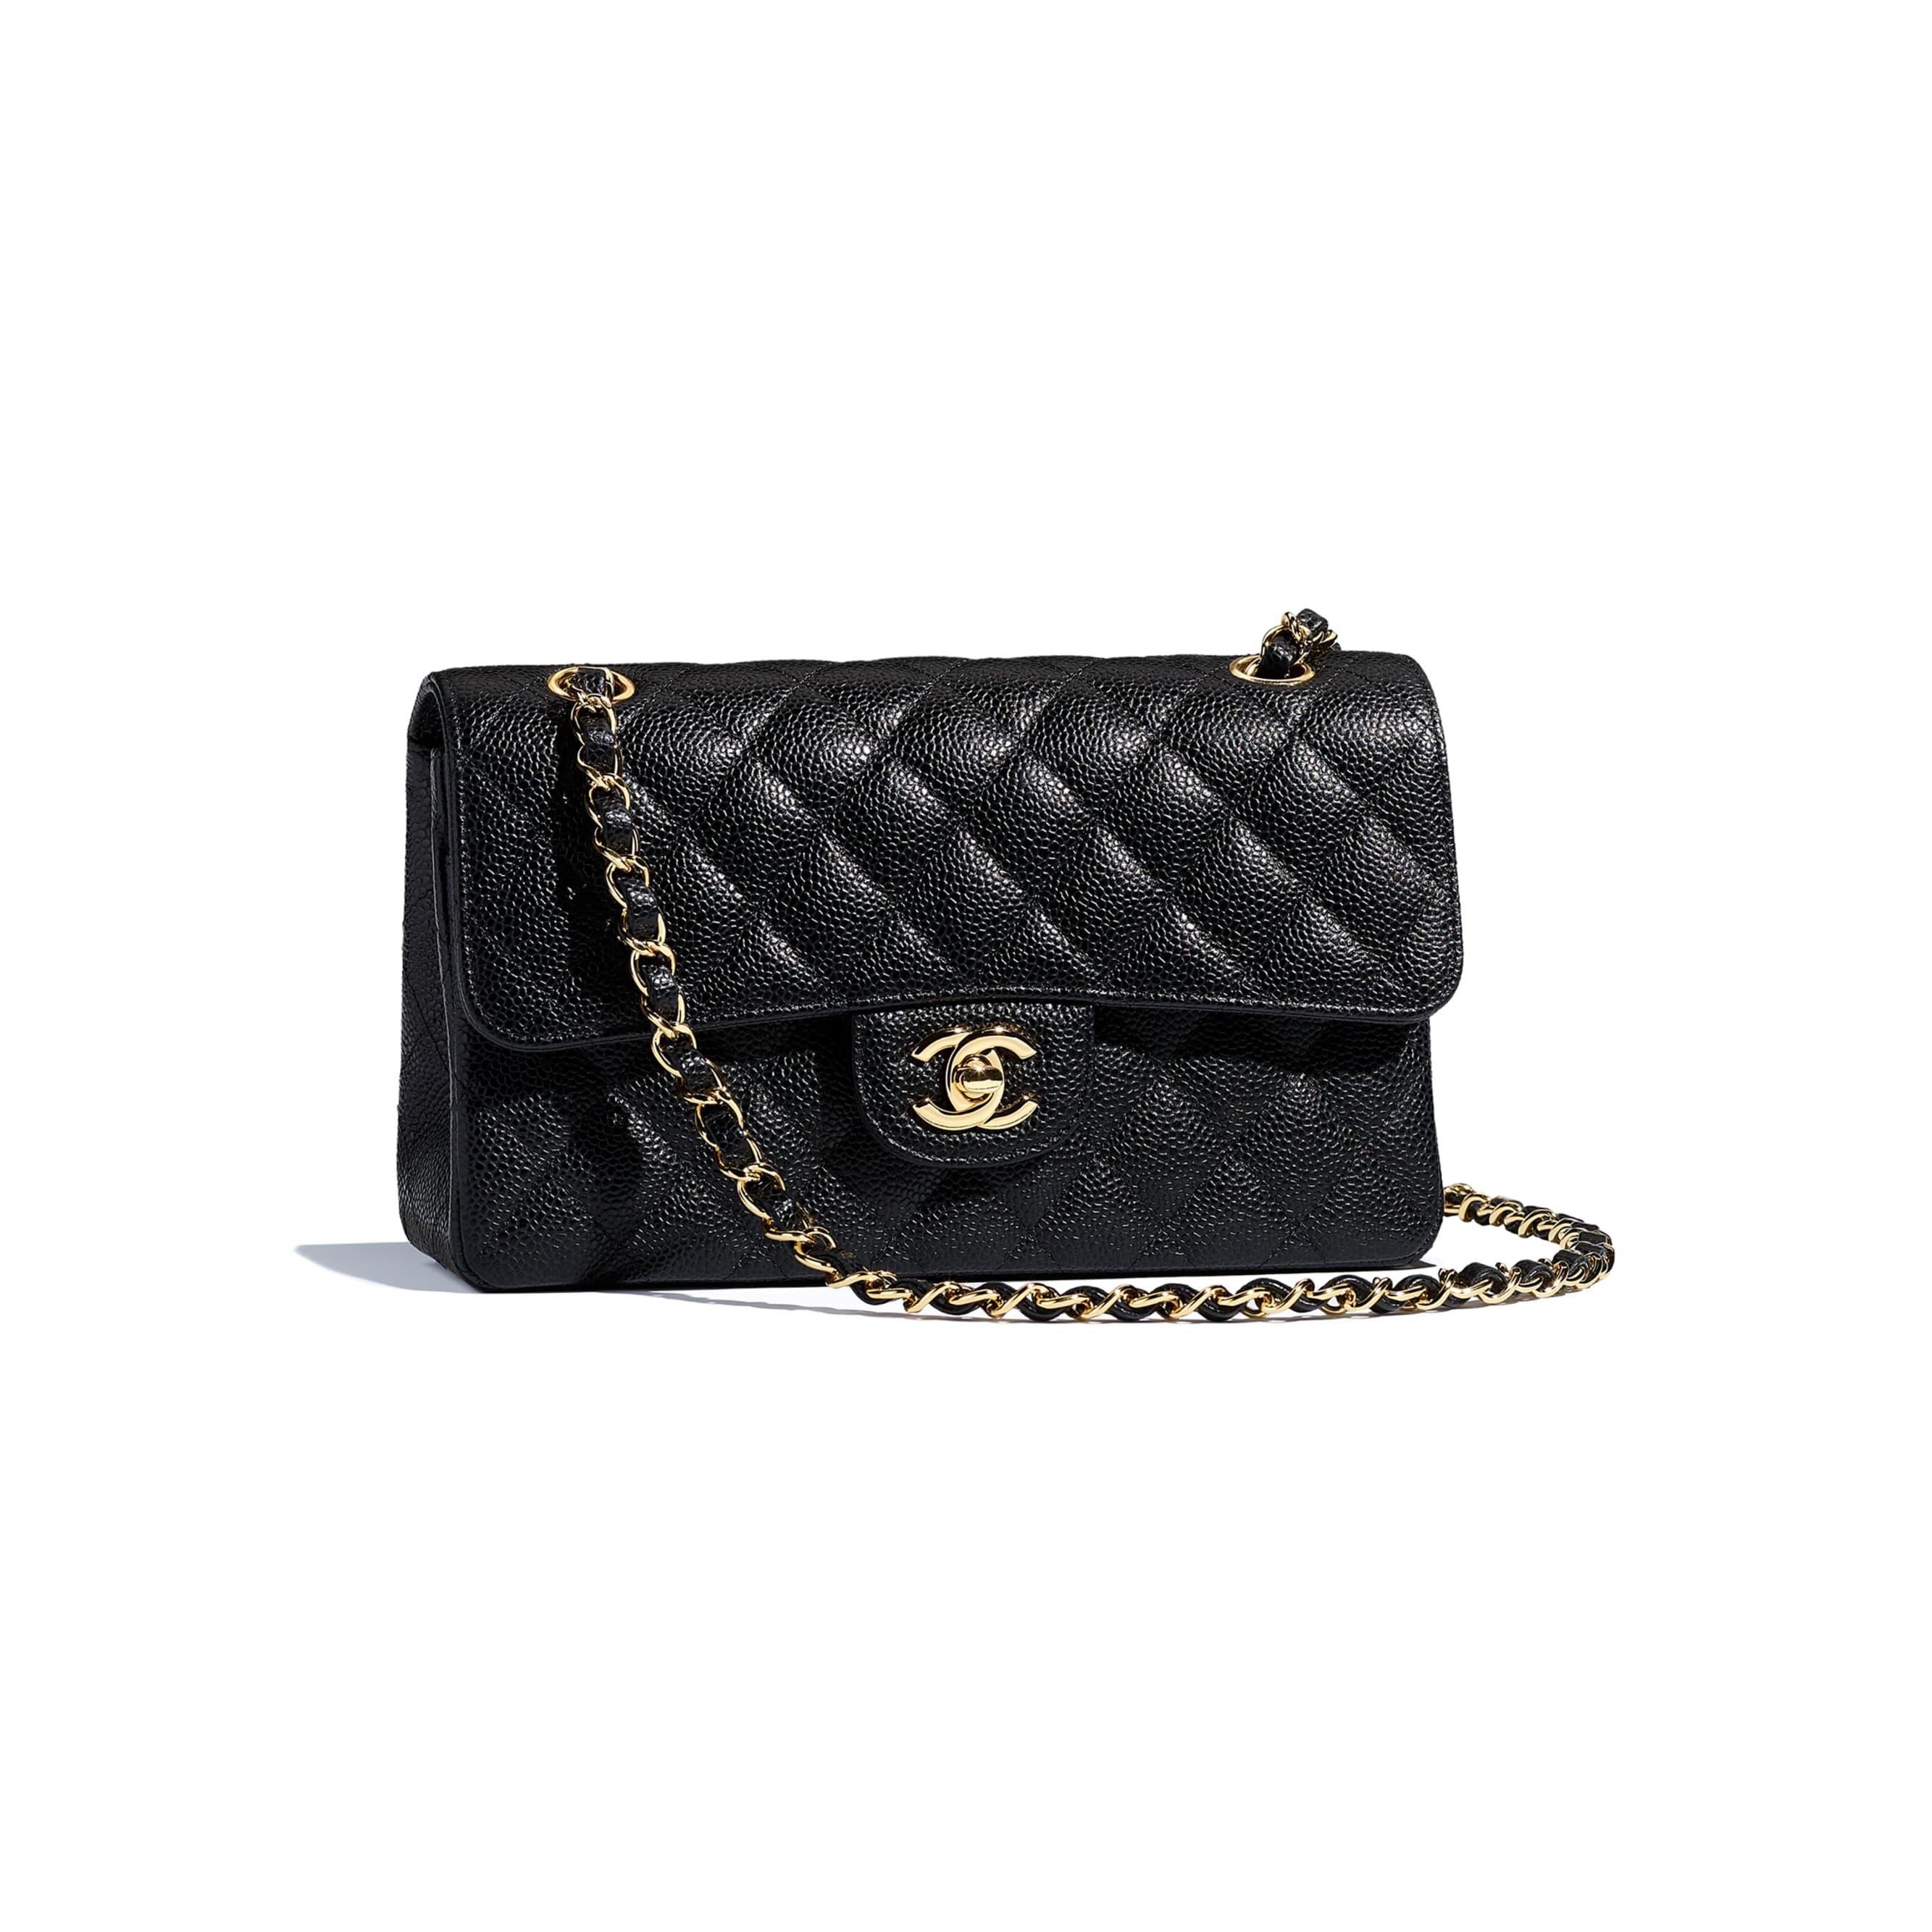 Small Classic Handbag - Black - Grained Calfskin & Gold-Tone Metal - CHANEL - Other view - see standard sized version